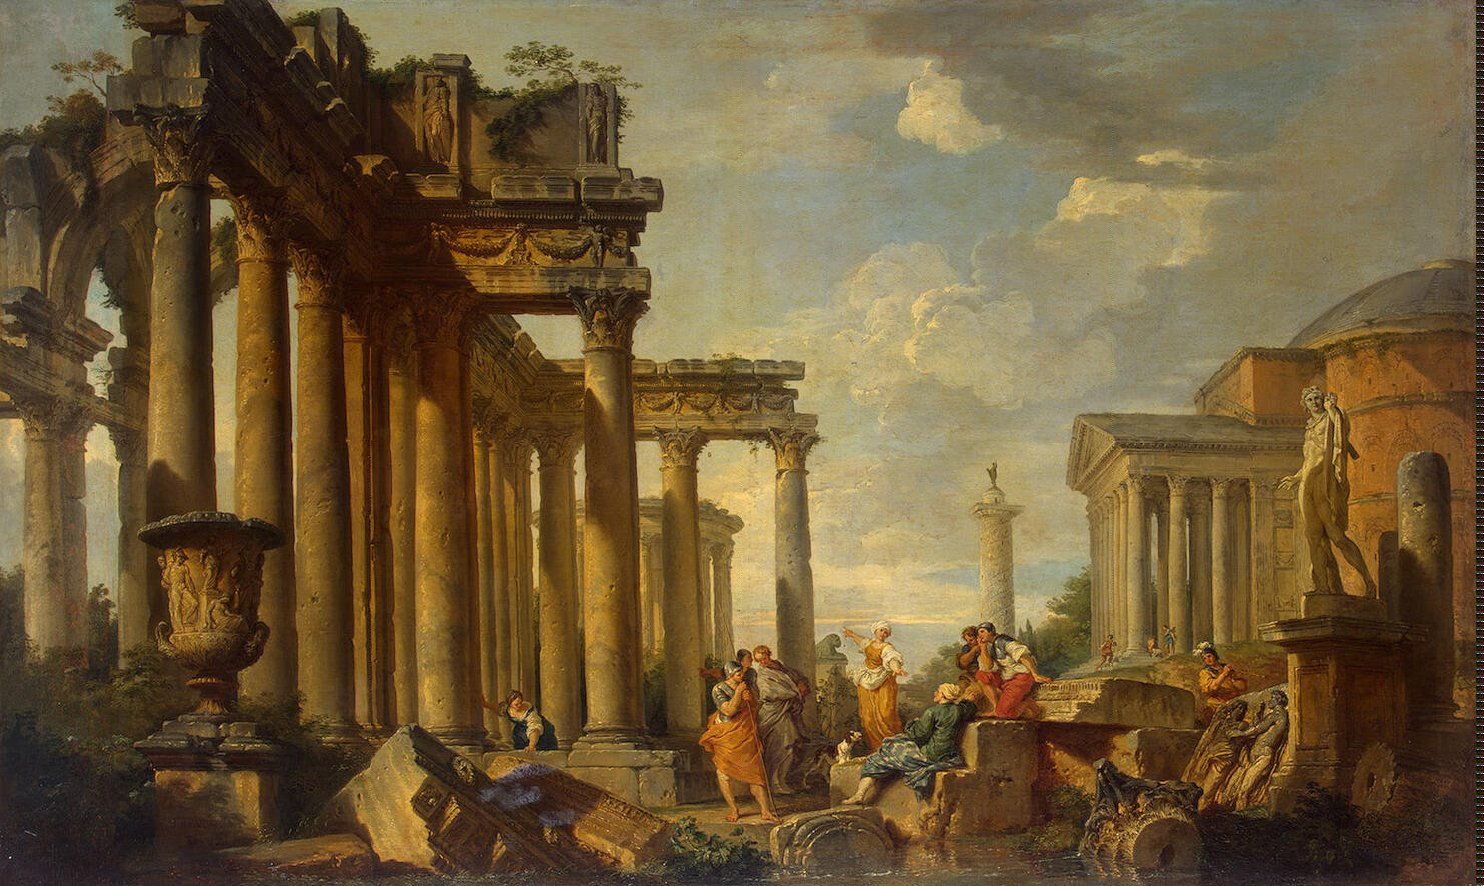 An architectural capriccio with figures among Roman ruins by Giovanni Paolo Pannini (wikicommons)